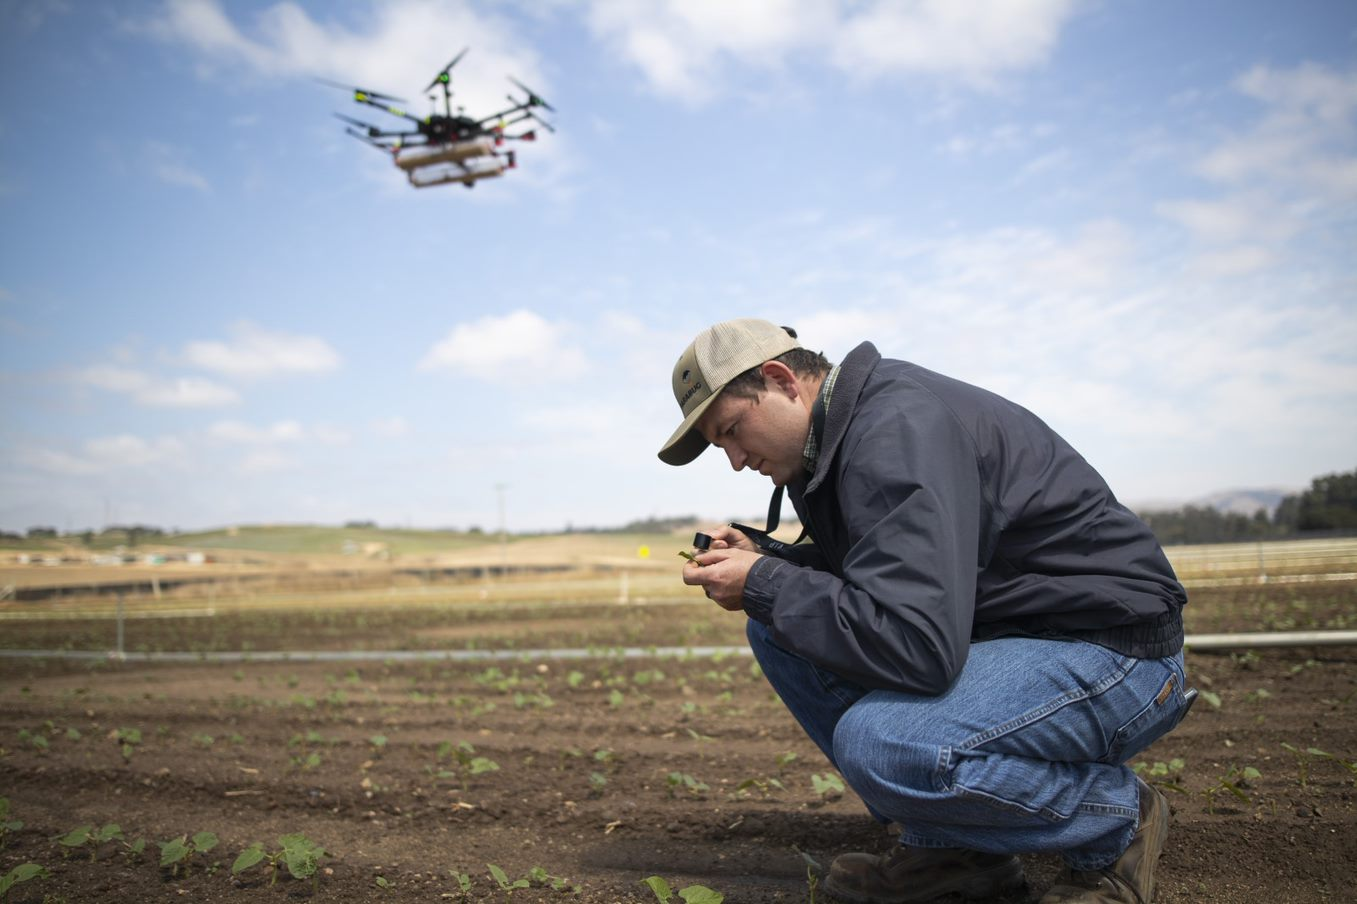 photo of Drones top of mind for hemp producers considering artificial intelligence image